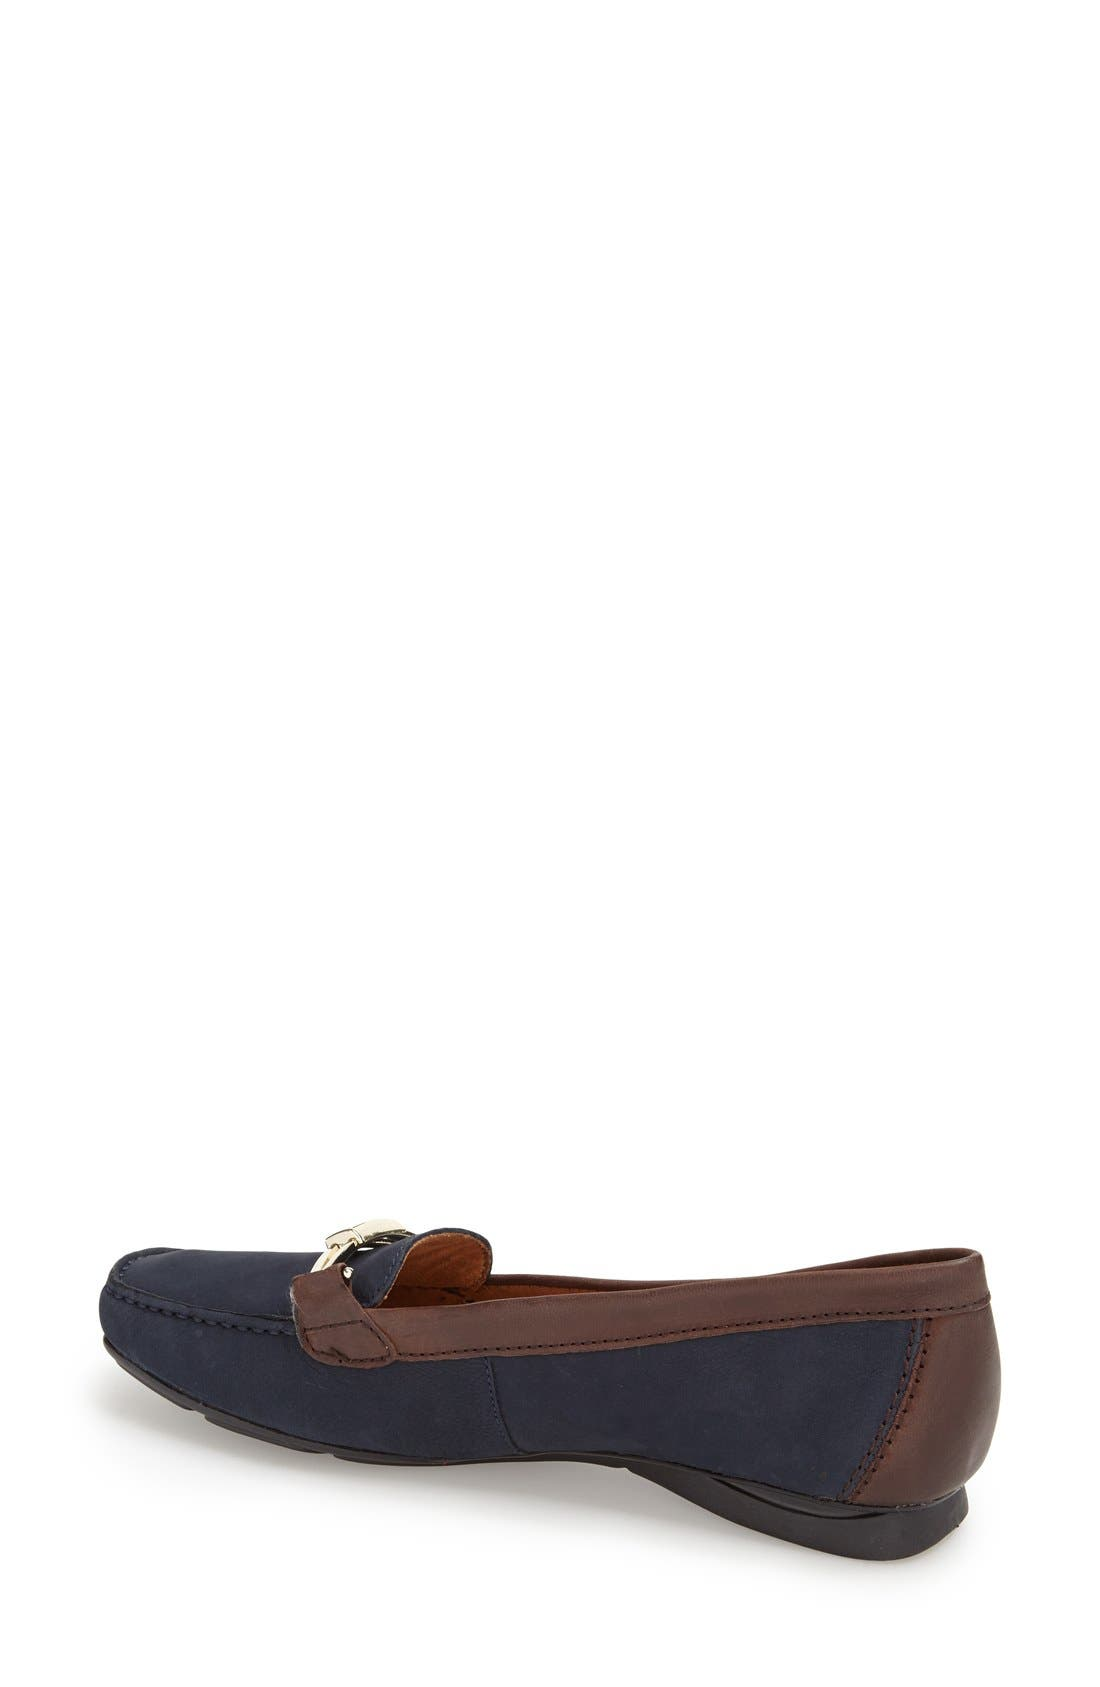 'Saturday' Loafer,                             Alternate thumbnail 13, color,